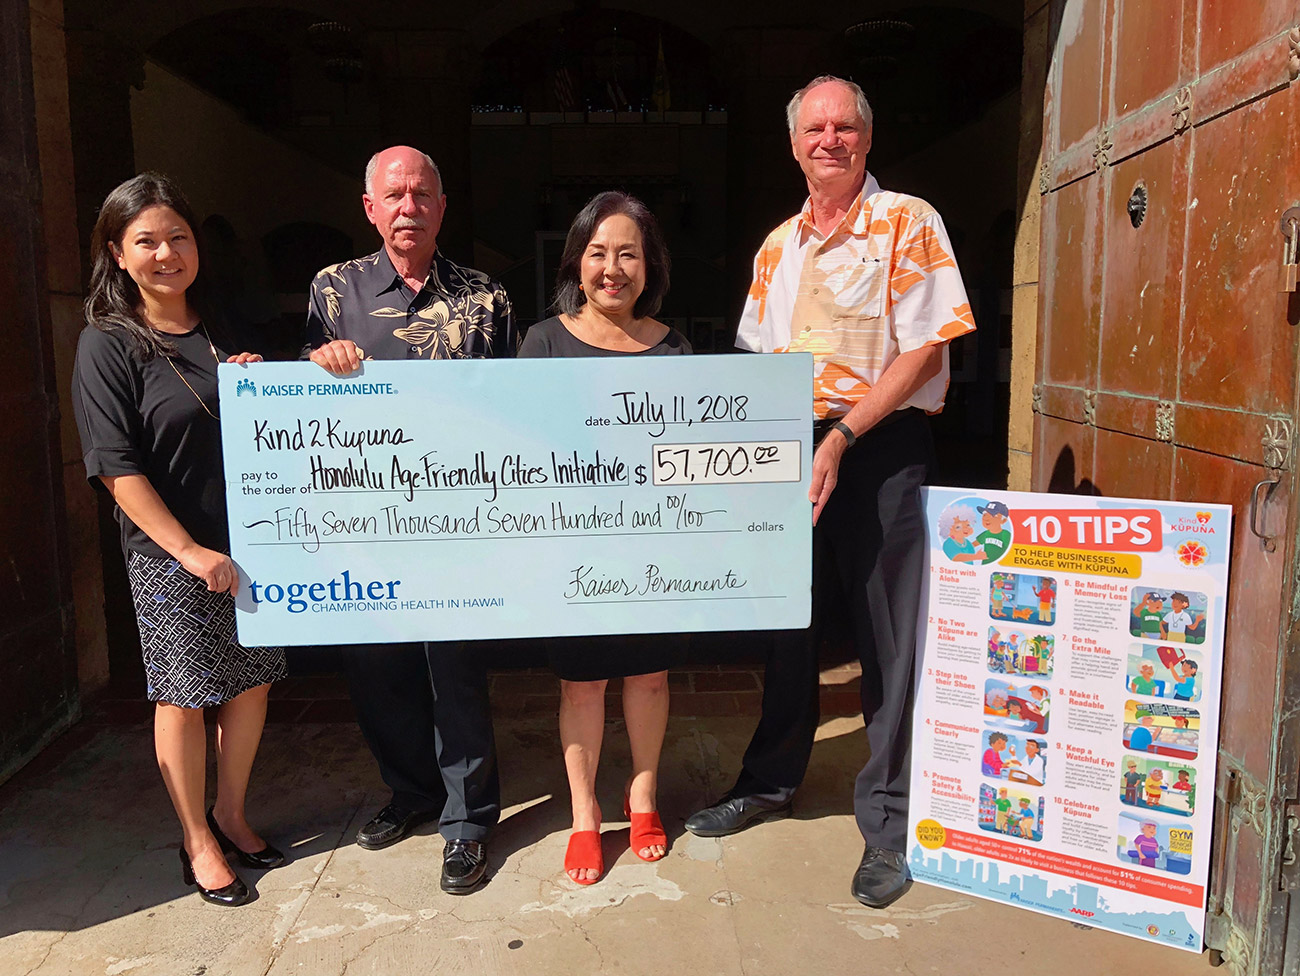 Christy Nishita, Ph.D., Terry Muldoon, Georgette Deemer, Frank Streed holding a giant replica bank check.